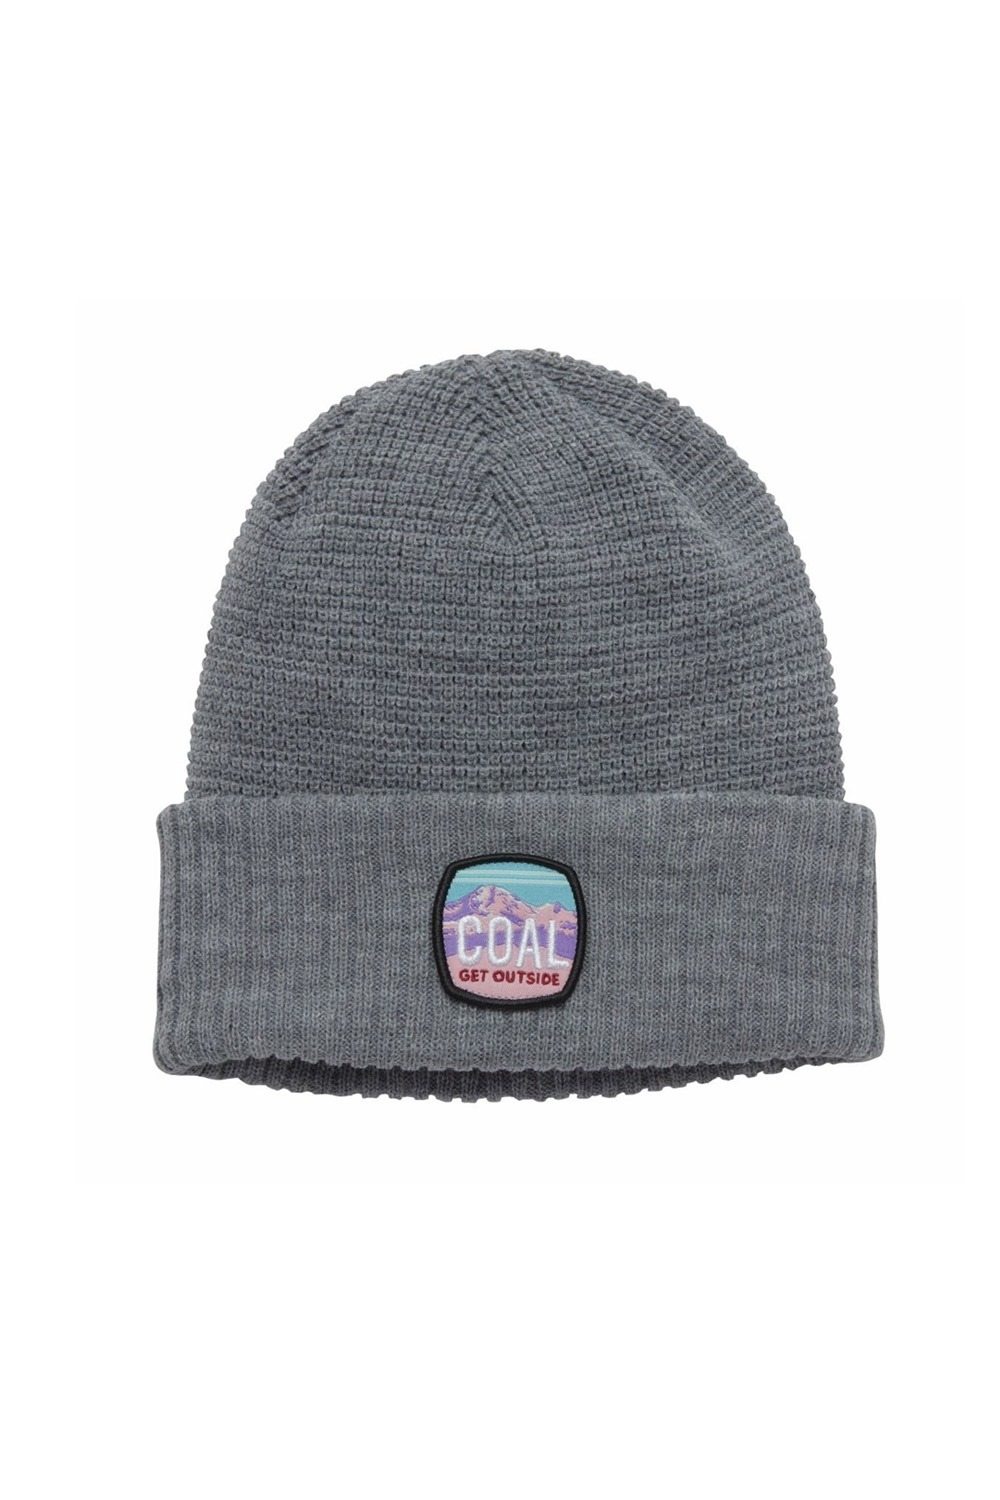 콜 모자 더 투마로 비니_남녀공용_1920 COAL_THE TUMALO BEANIE_HEATHER GREY_ICA909Y4[21]_DICA909Y4